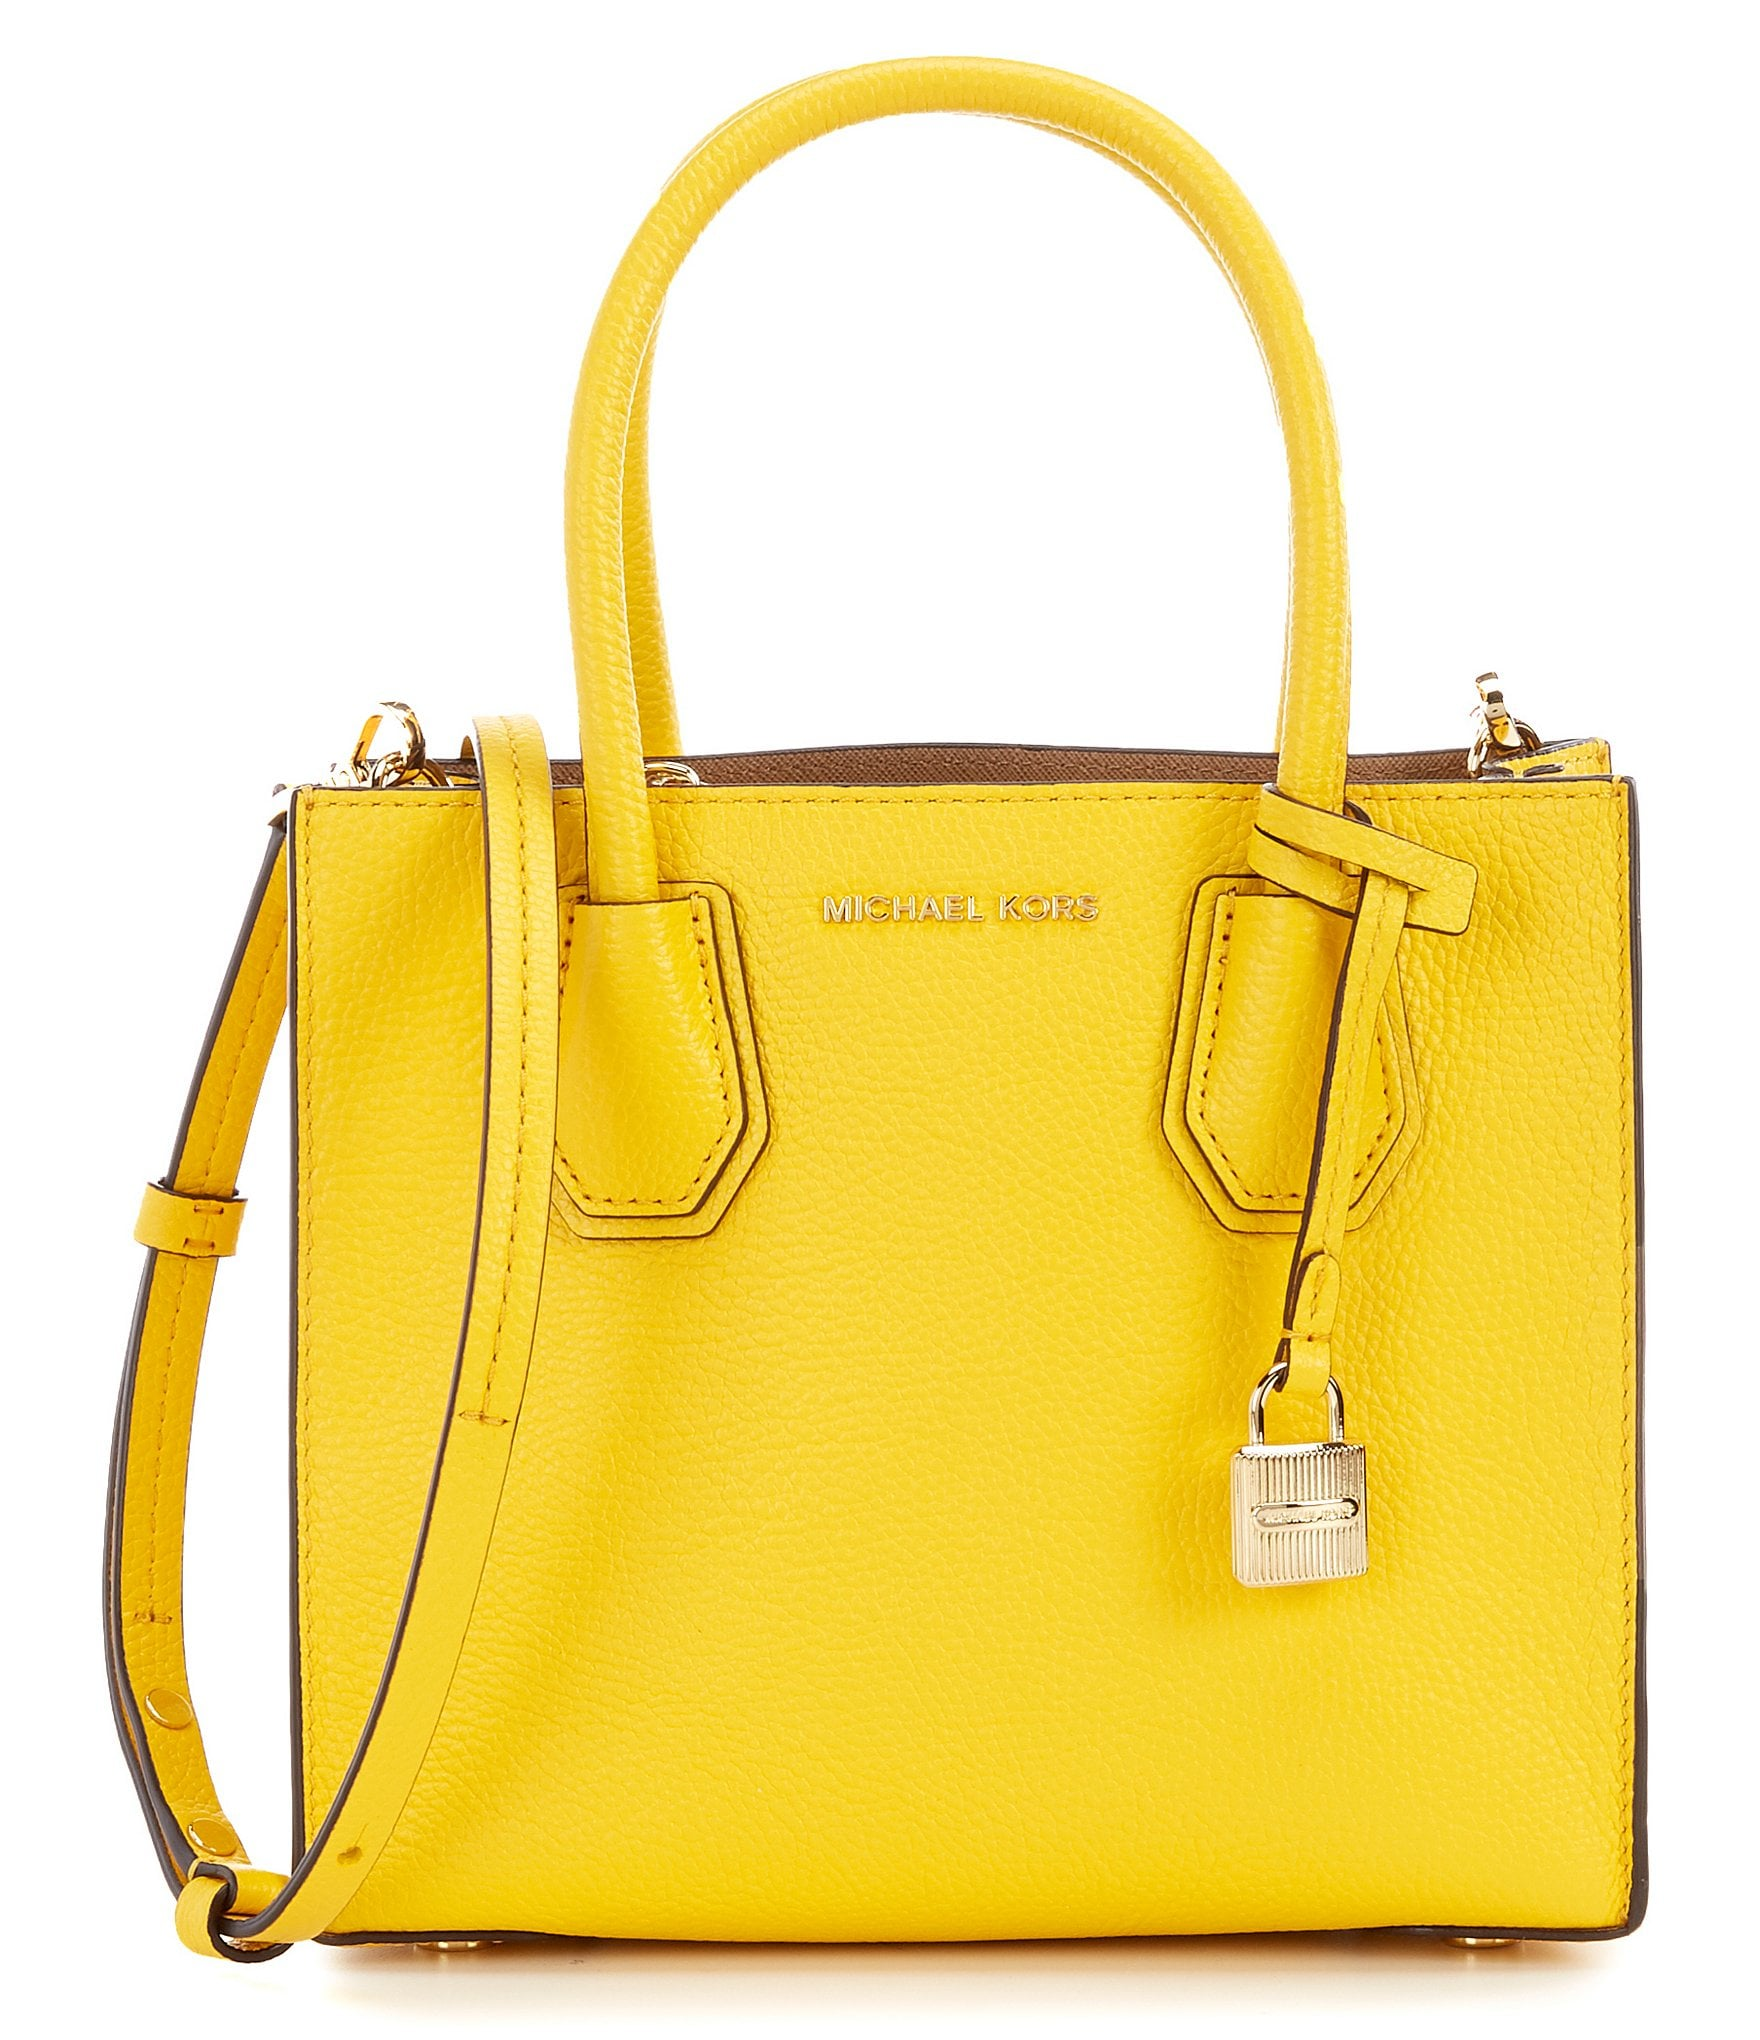 A Michael Kors Jet Set Large Crossbody Bag is crafted in signature logo Michael Kors Women's Bedford Top Zip Pocket Tote Bag. by Michael Kors. $ - $ $ $ 80 Prime. FREE Shipping on eligible orders. Some colors are Prime eligible. out of .